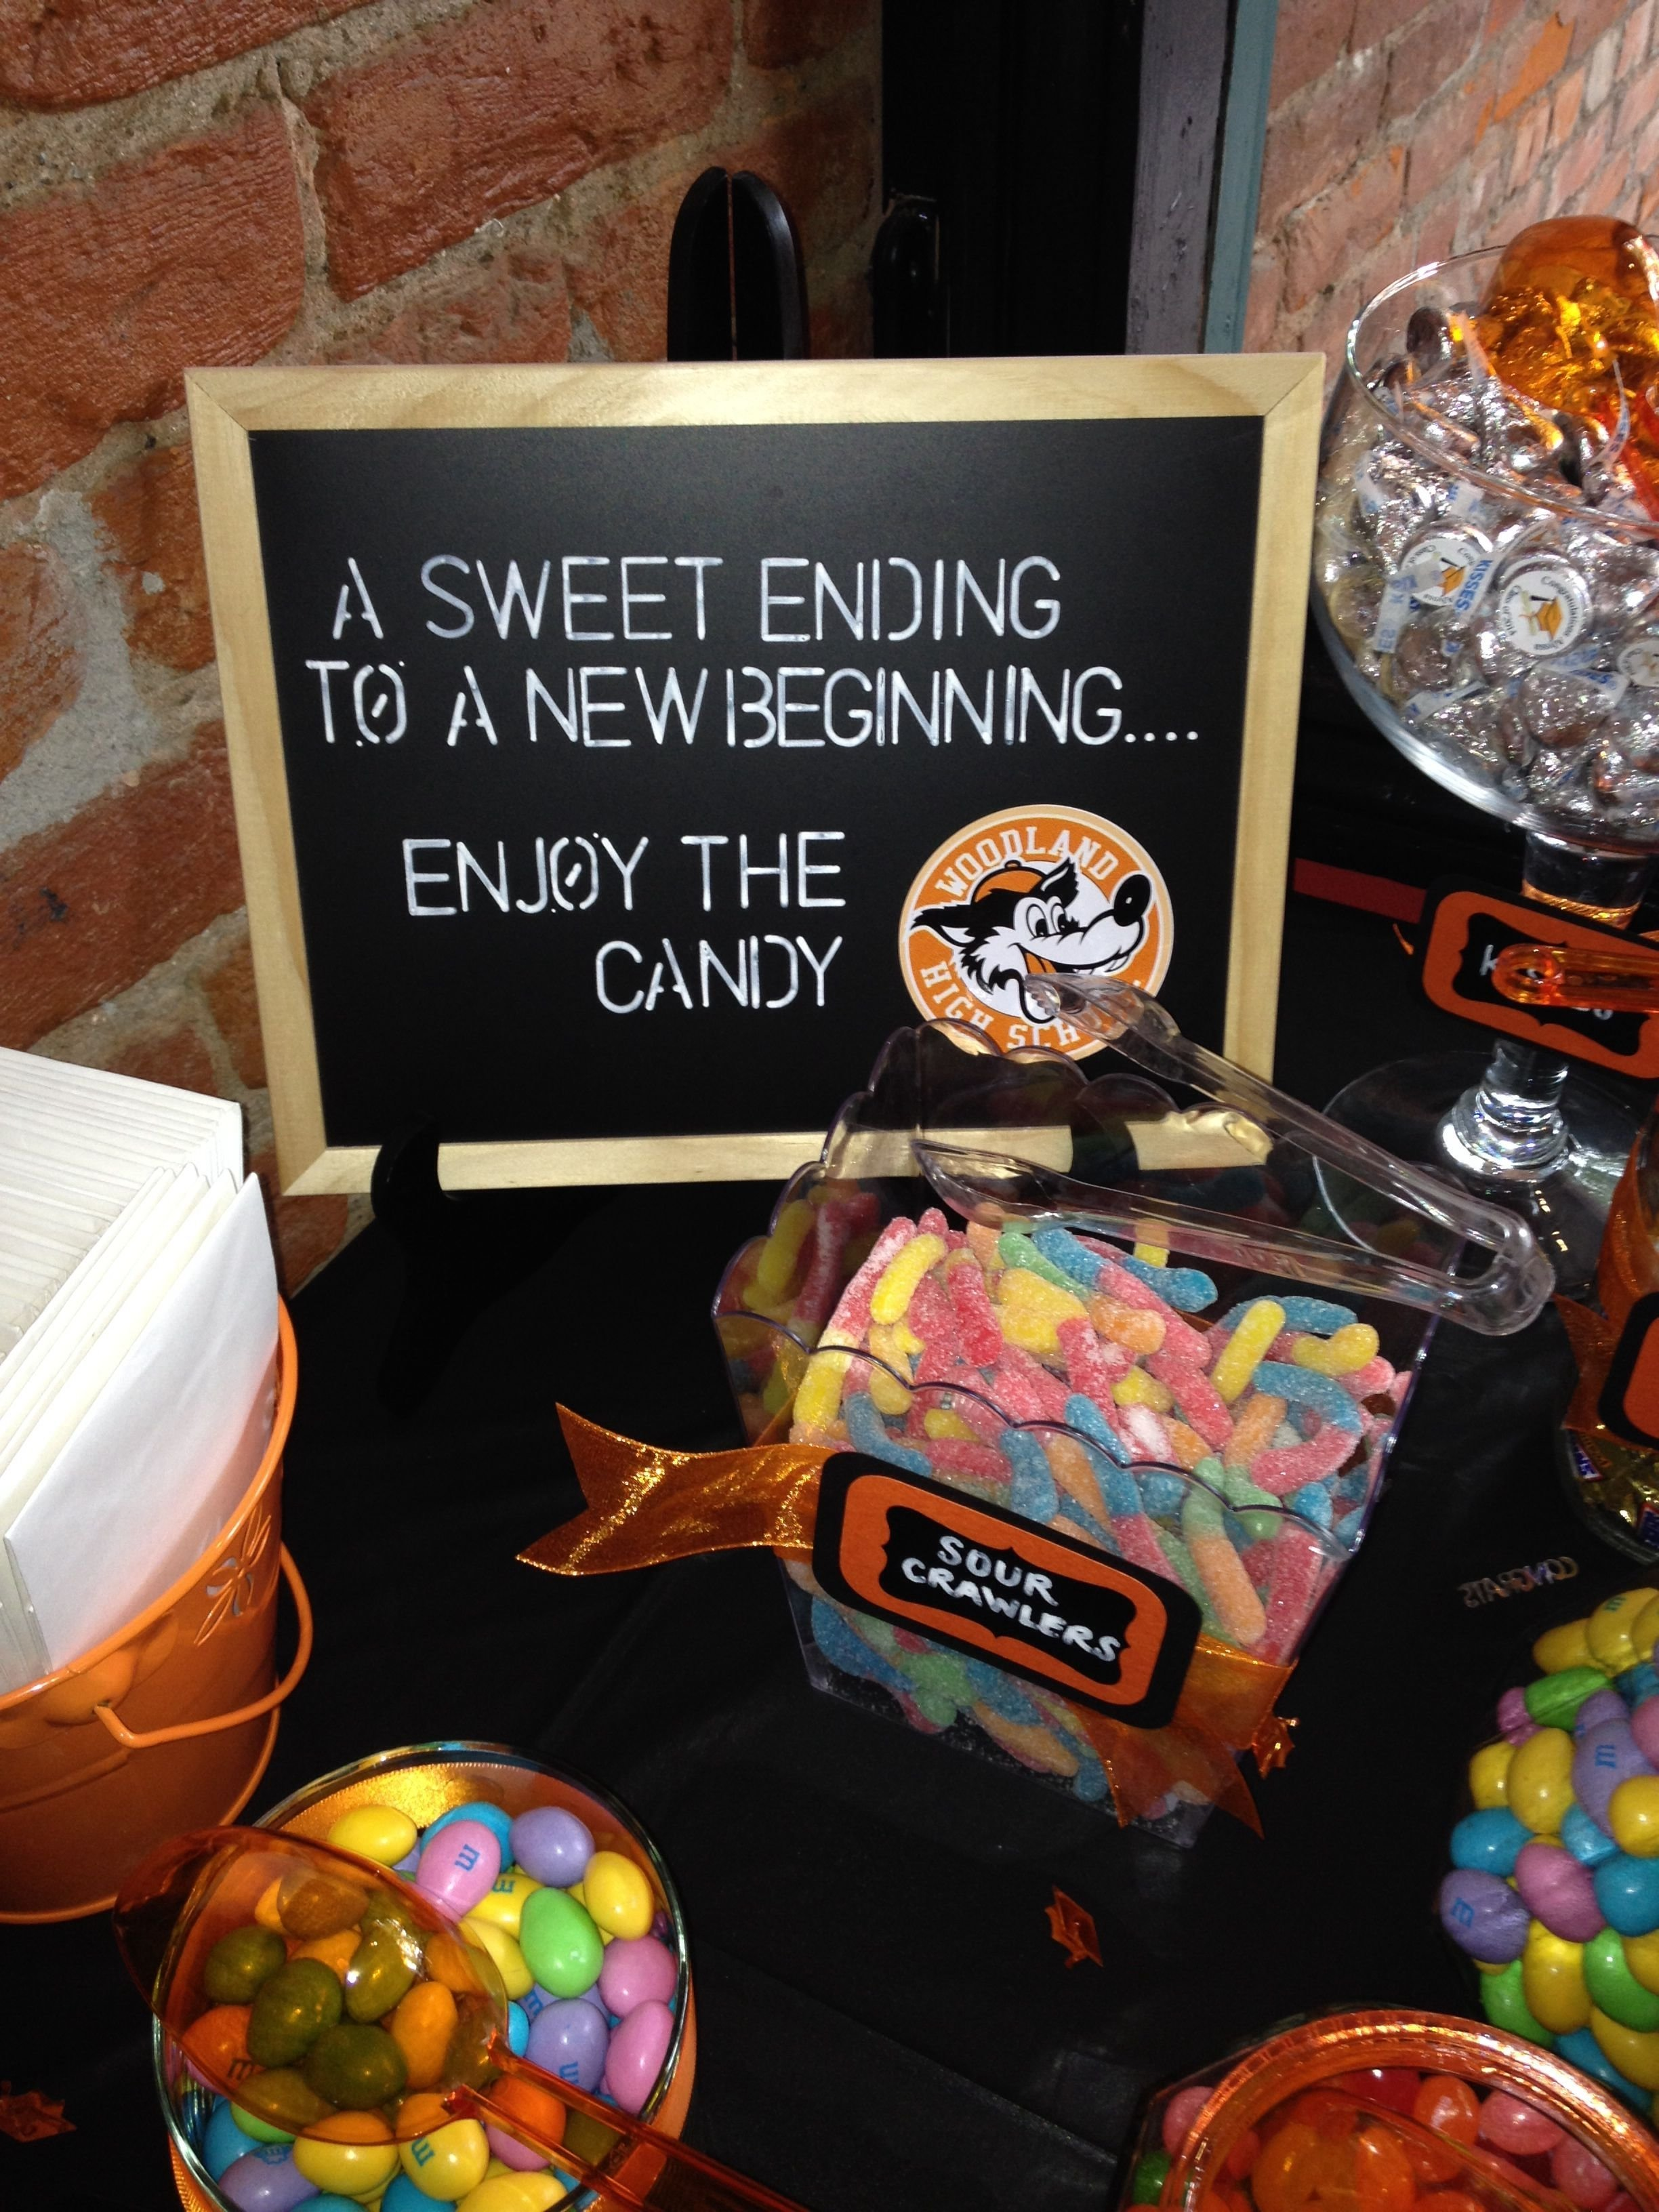 10 Spectacular 8Th Grade Graduation Party Ideas graduation party ideas candy bar sign graduation decorations 4